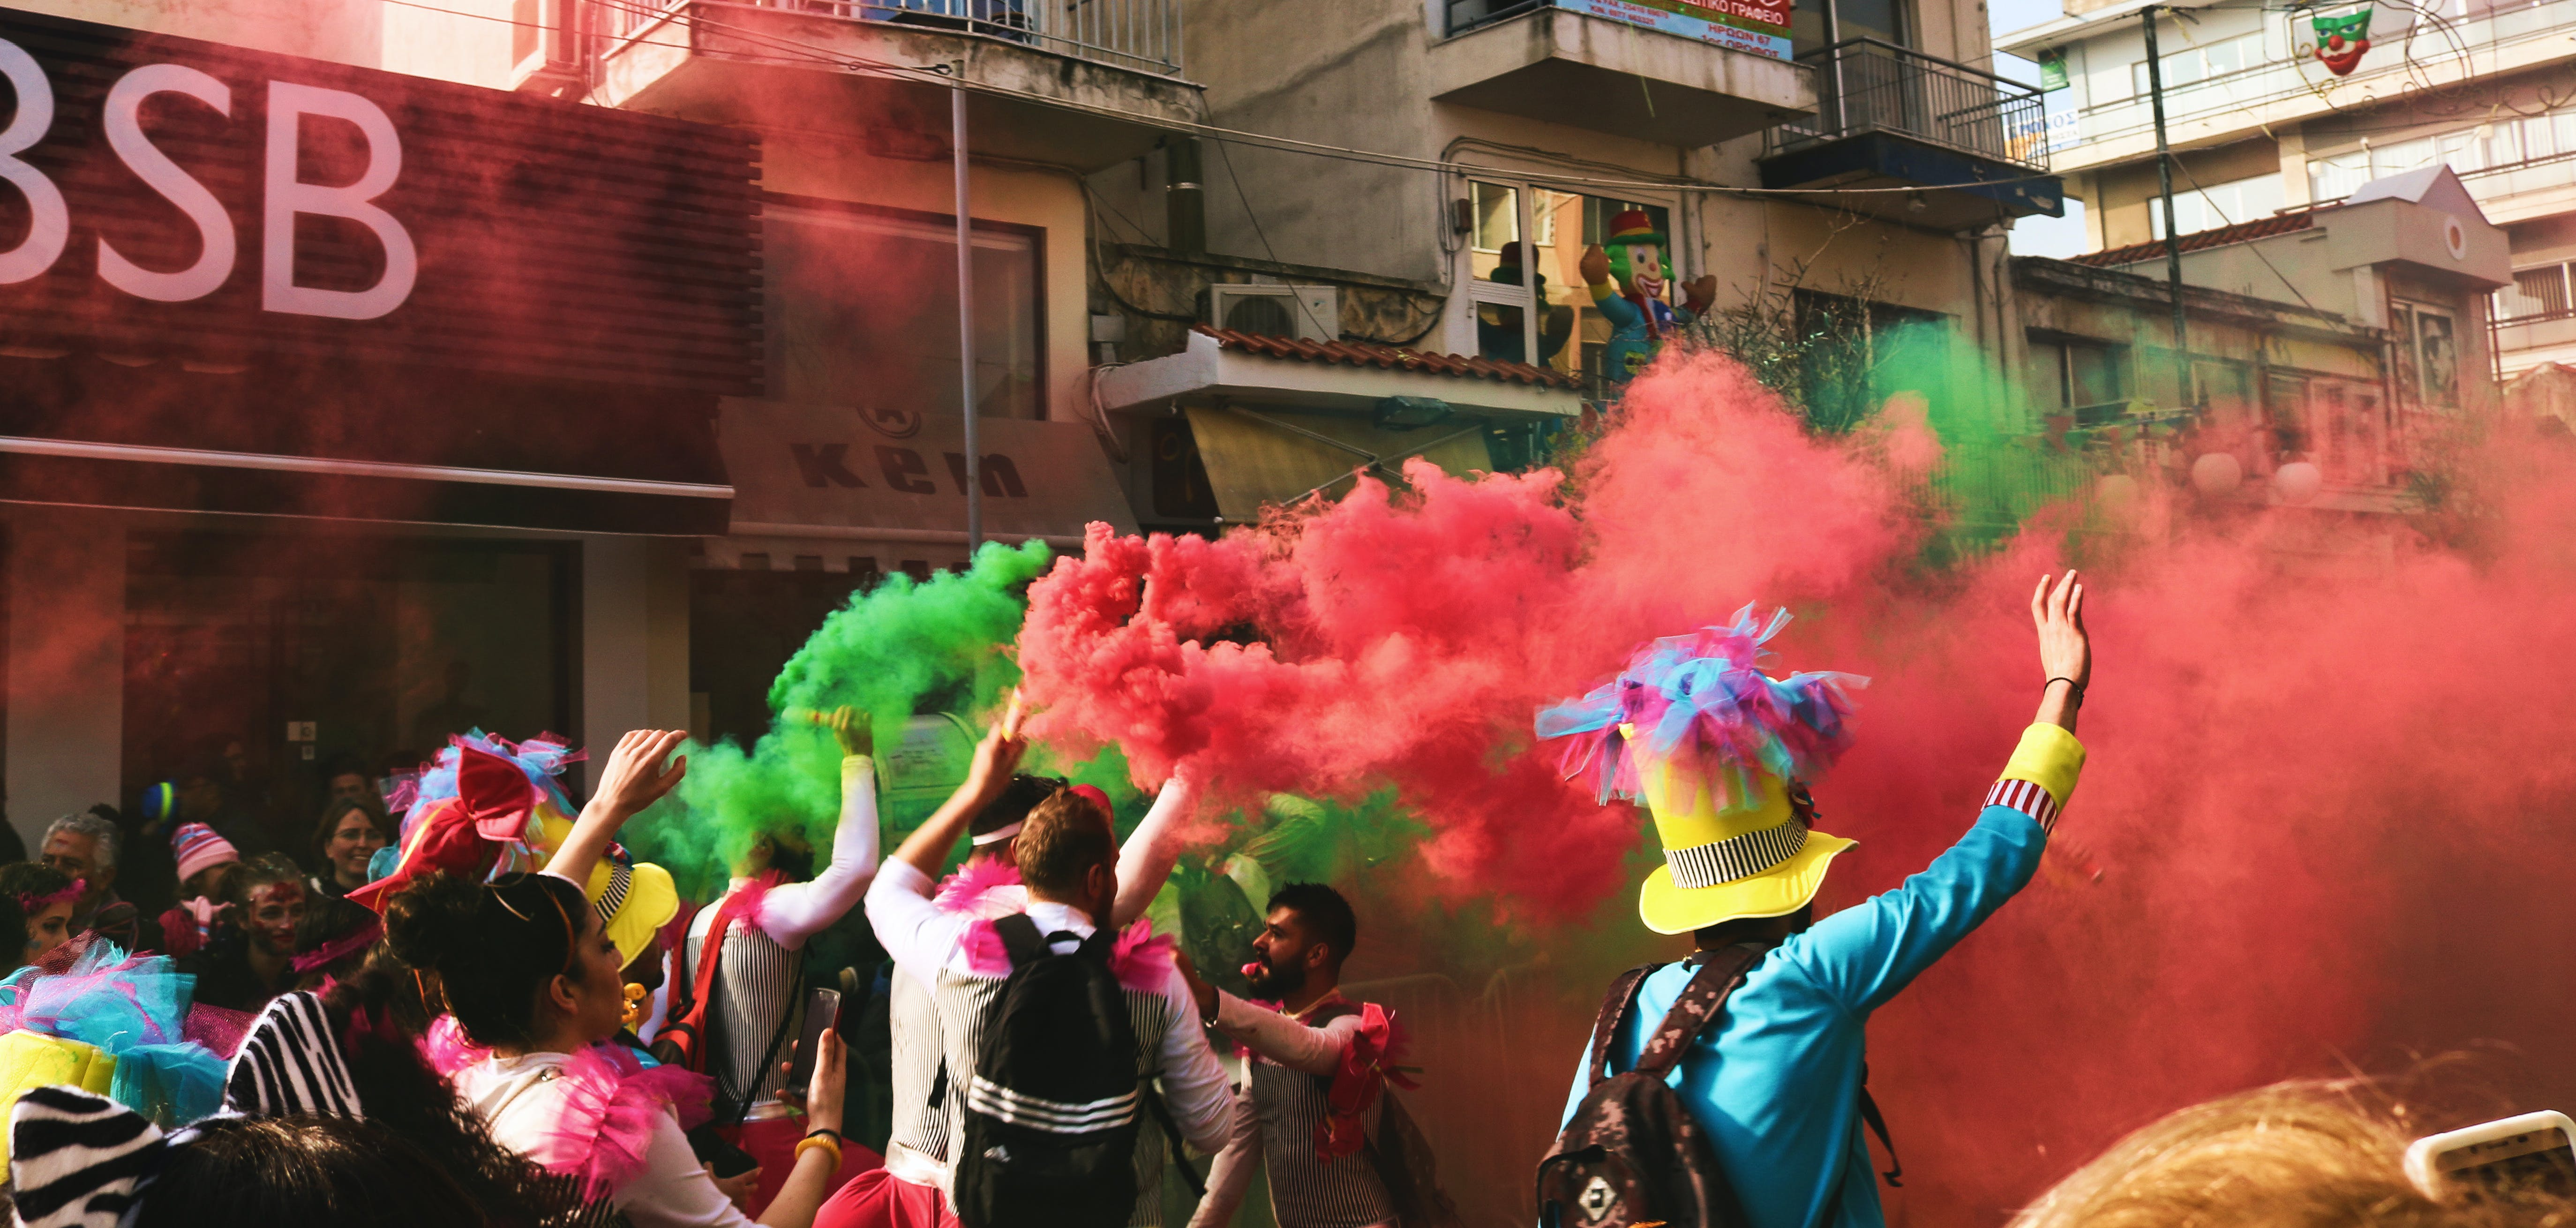 People Spraying Assorted Color Of Smoke